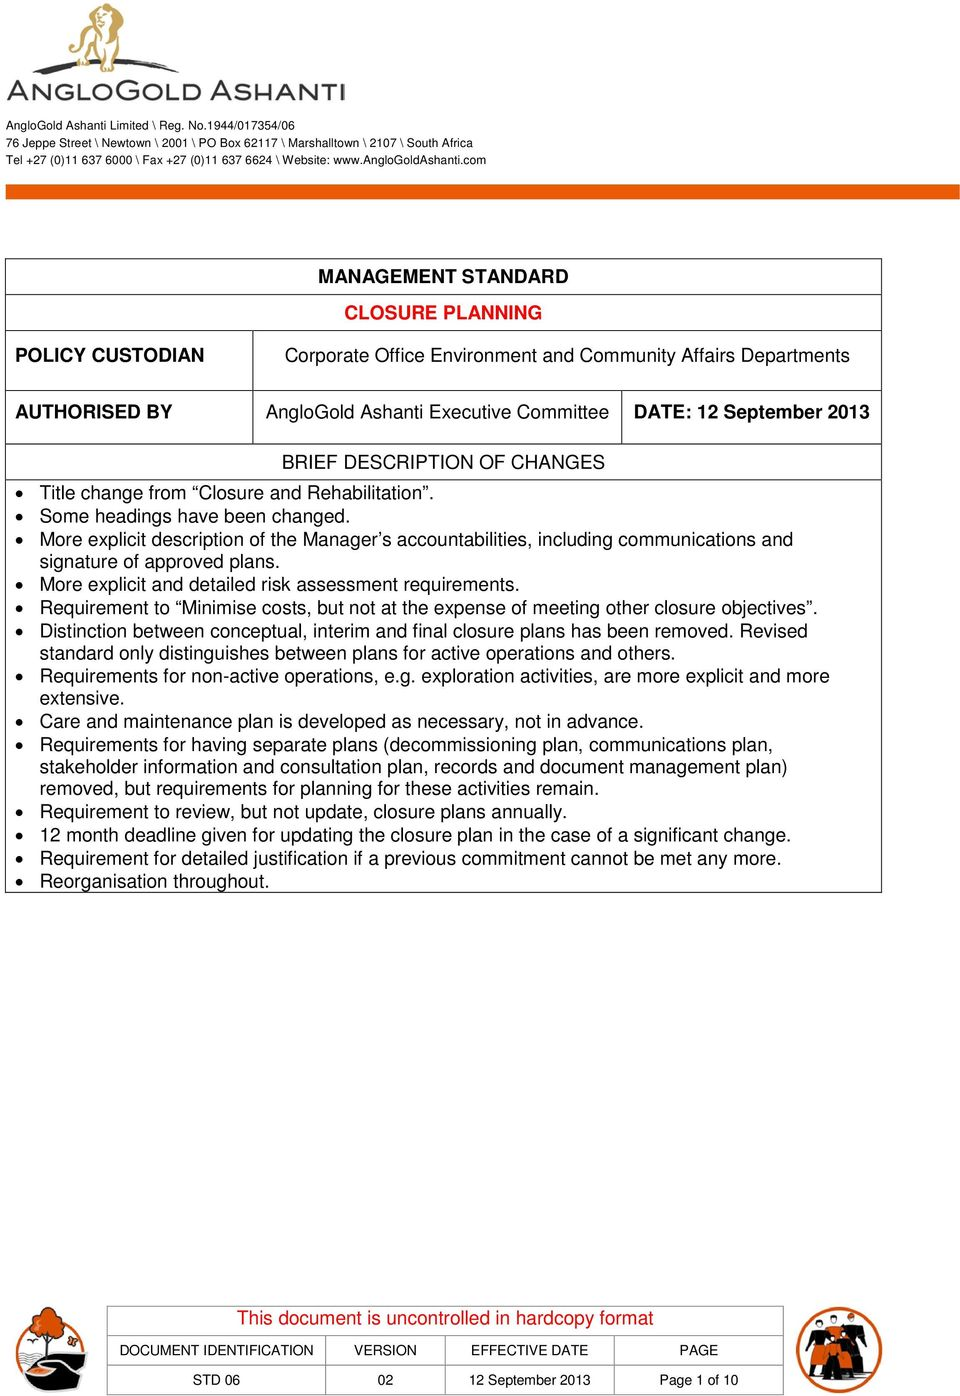 com MANAGEMENT STANDARD CLOSURE PLANNING POLICY CUSTODIAN Corporate Office Environment and Community Affairs Departments AUTHORISED BY AngloGold Ashanti Executive Committee DATE: 12 September 2013